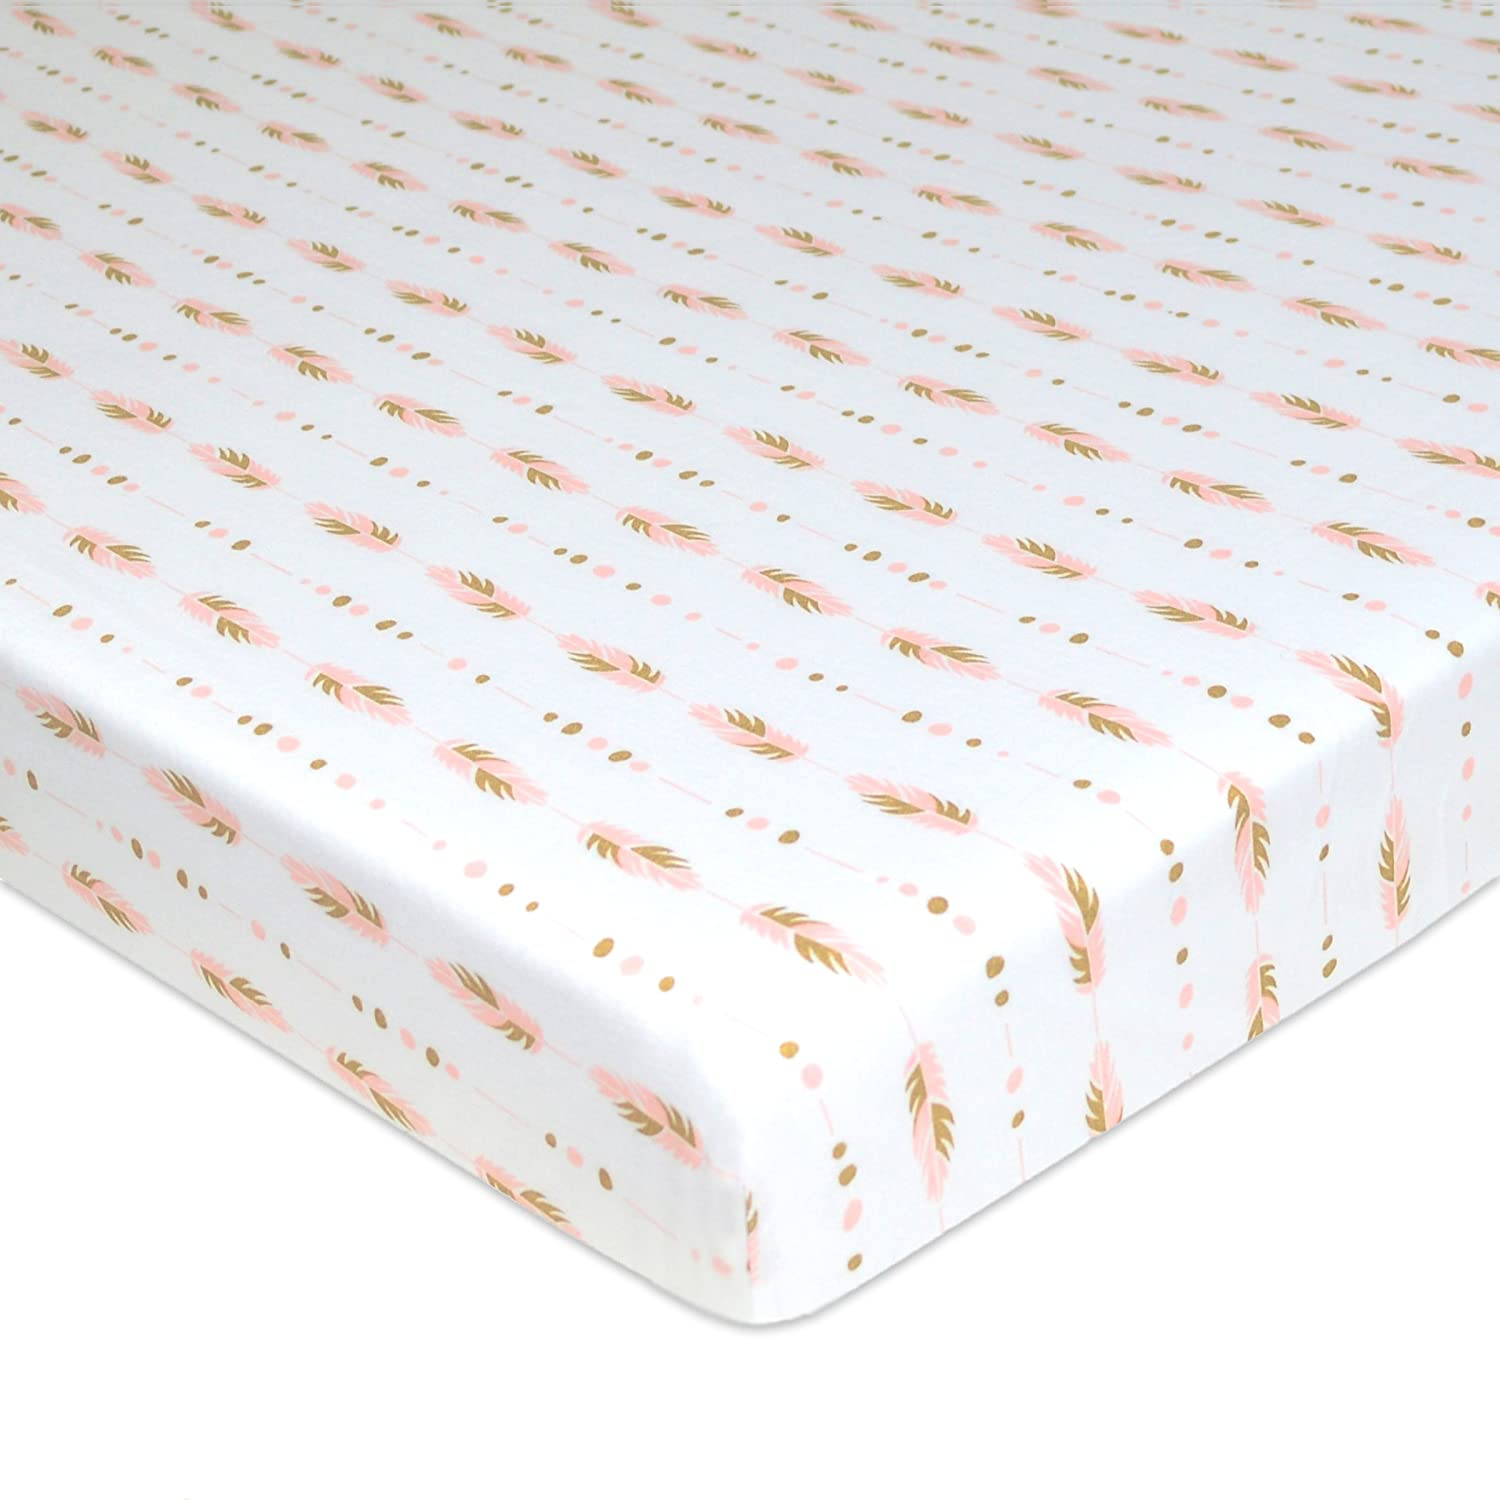 for Boys and Girls TL Care Fitted Portable//Mini-Crib Sheet 100/% Natural Cotton Jersey Soft Breathable Stars and Moon